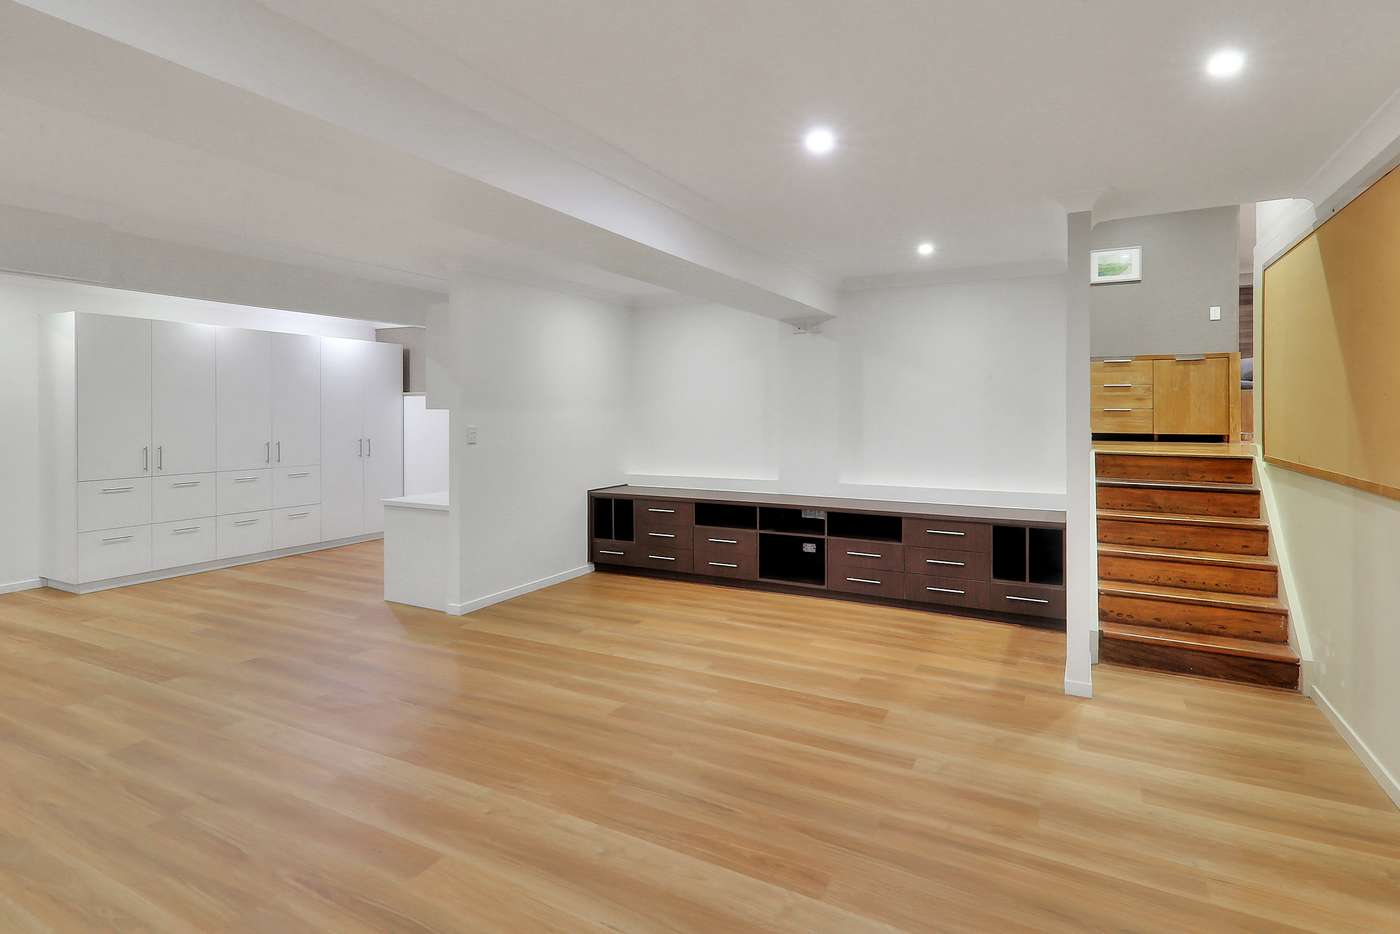 Sixth view of Homely house listing, 11 Brigantine Place, Sunnybank Hills QLD 4109